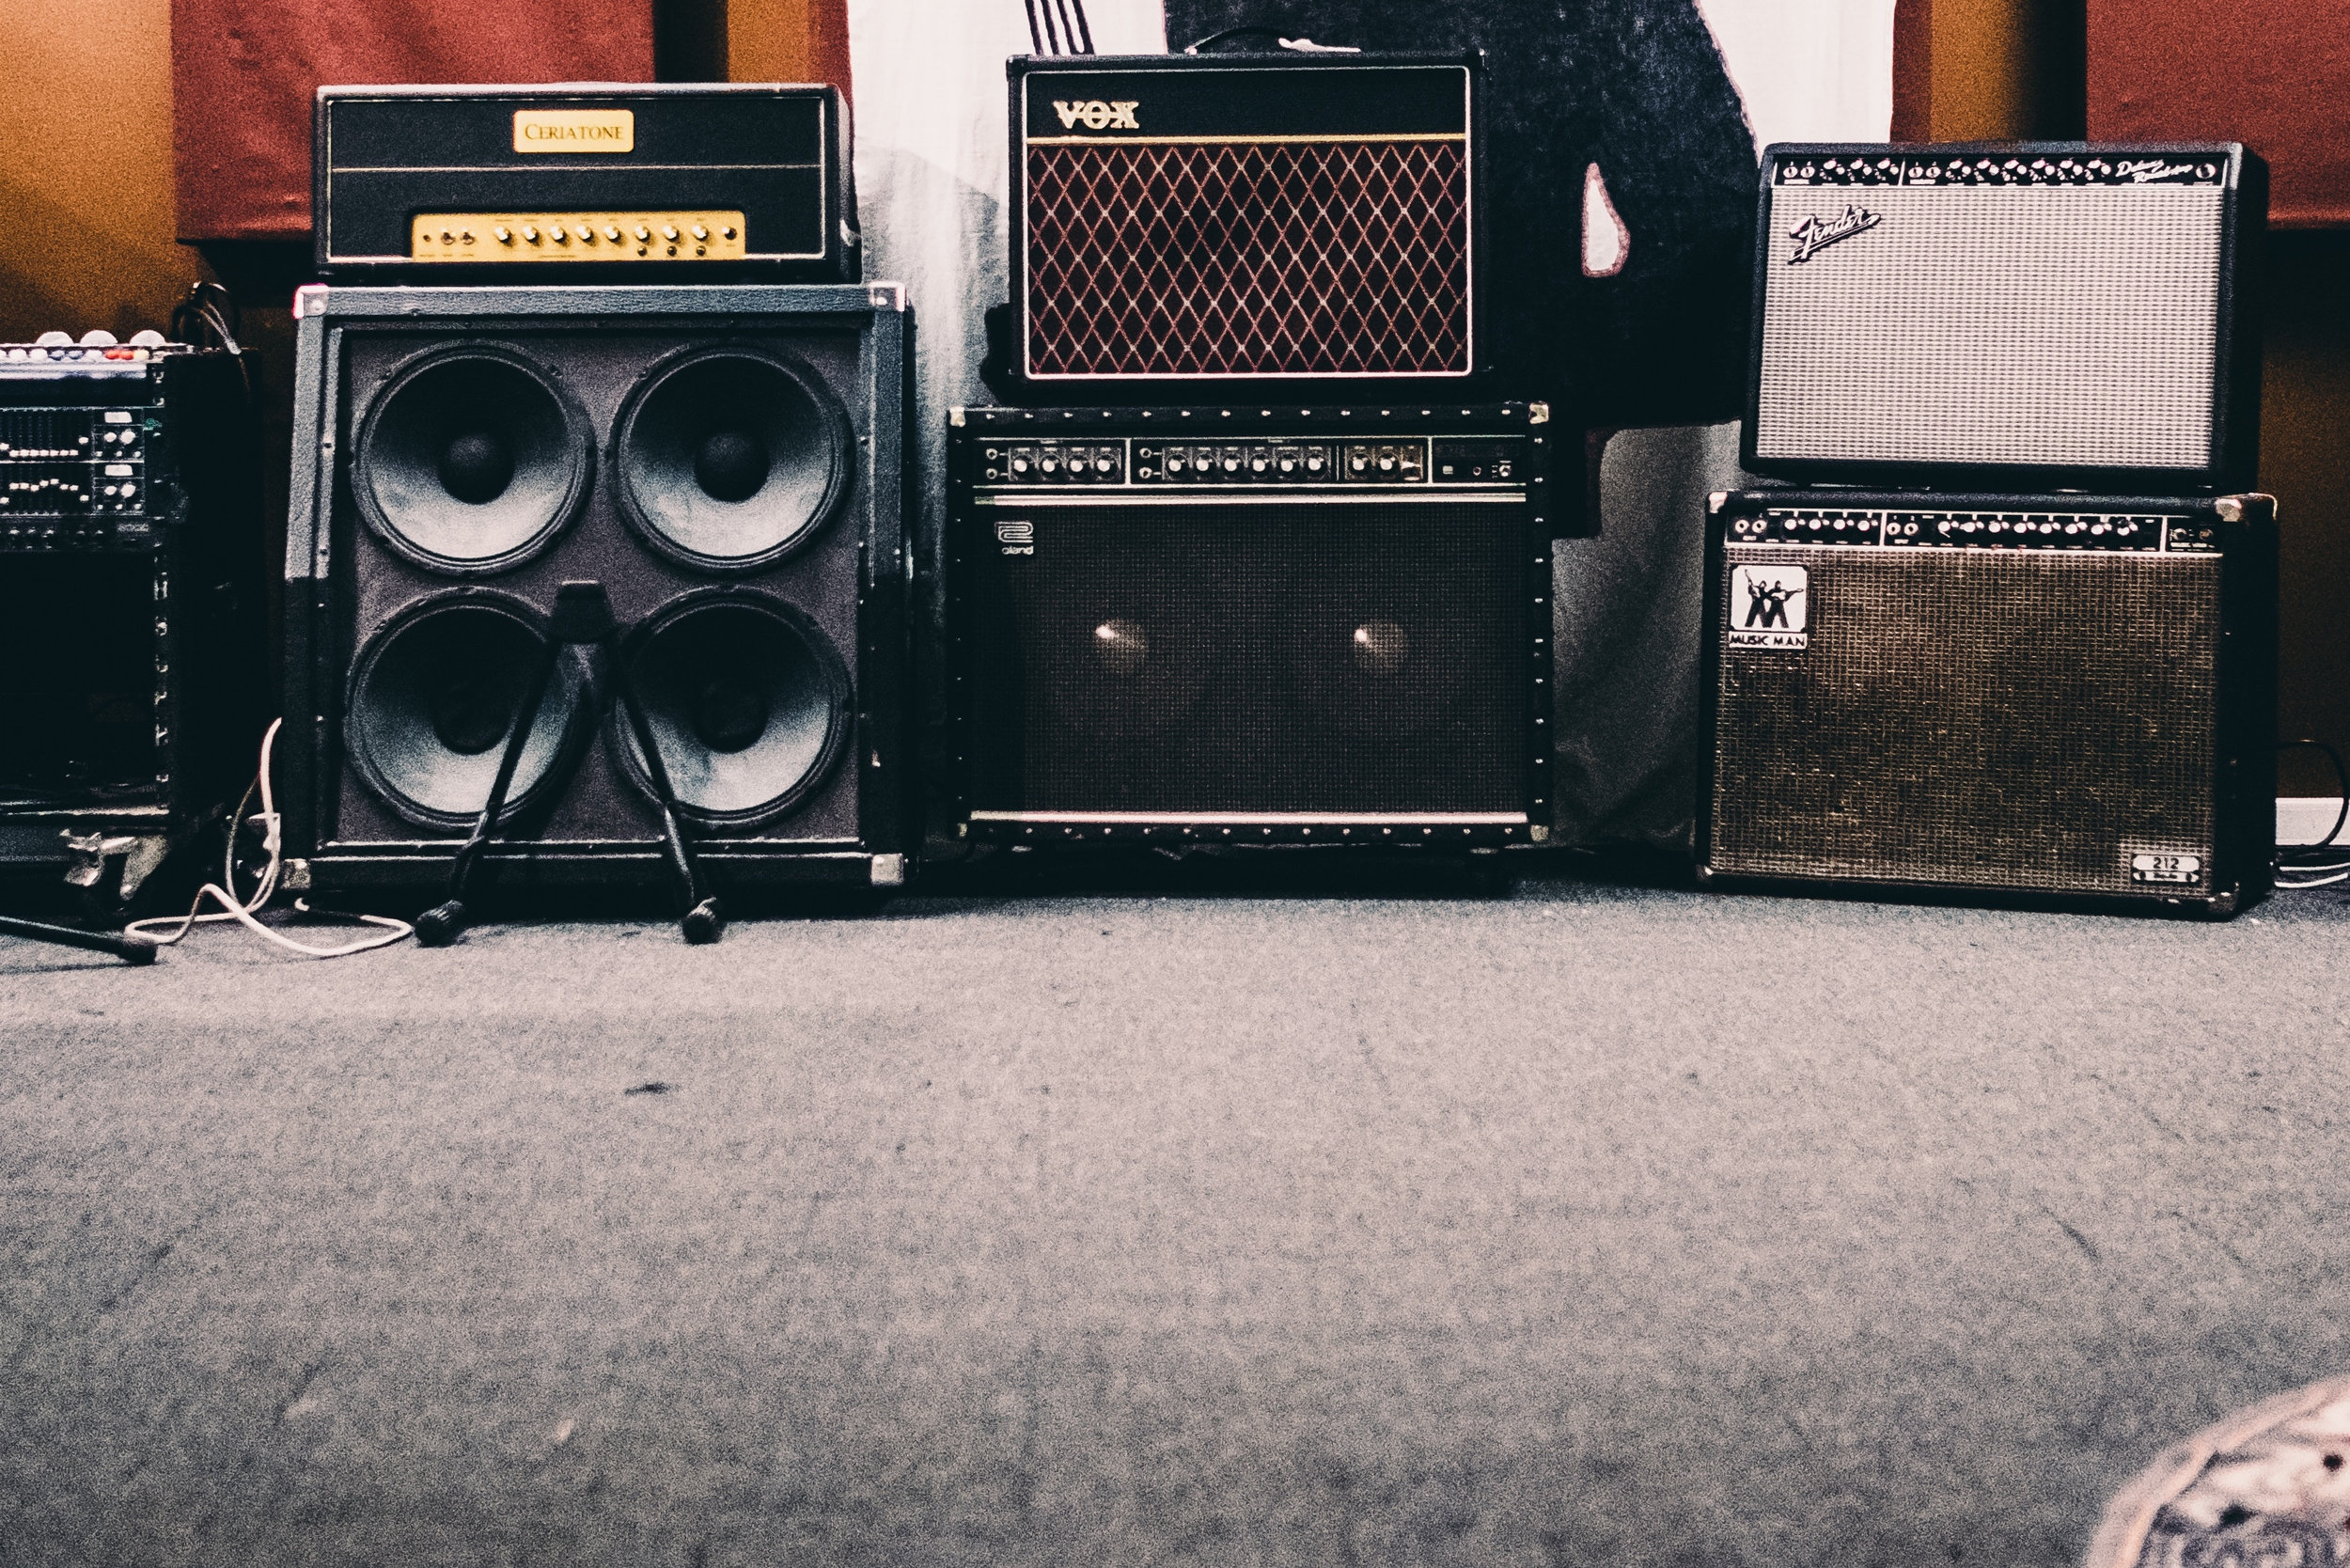 Additional Services - Appraisals, Tube Amp Repairs, Voice Lessons, Studio Sessions